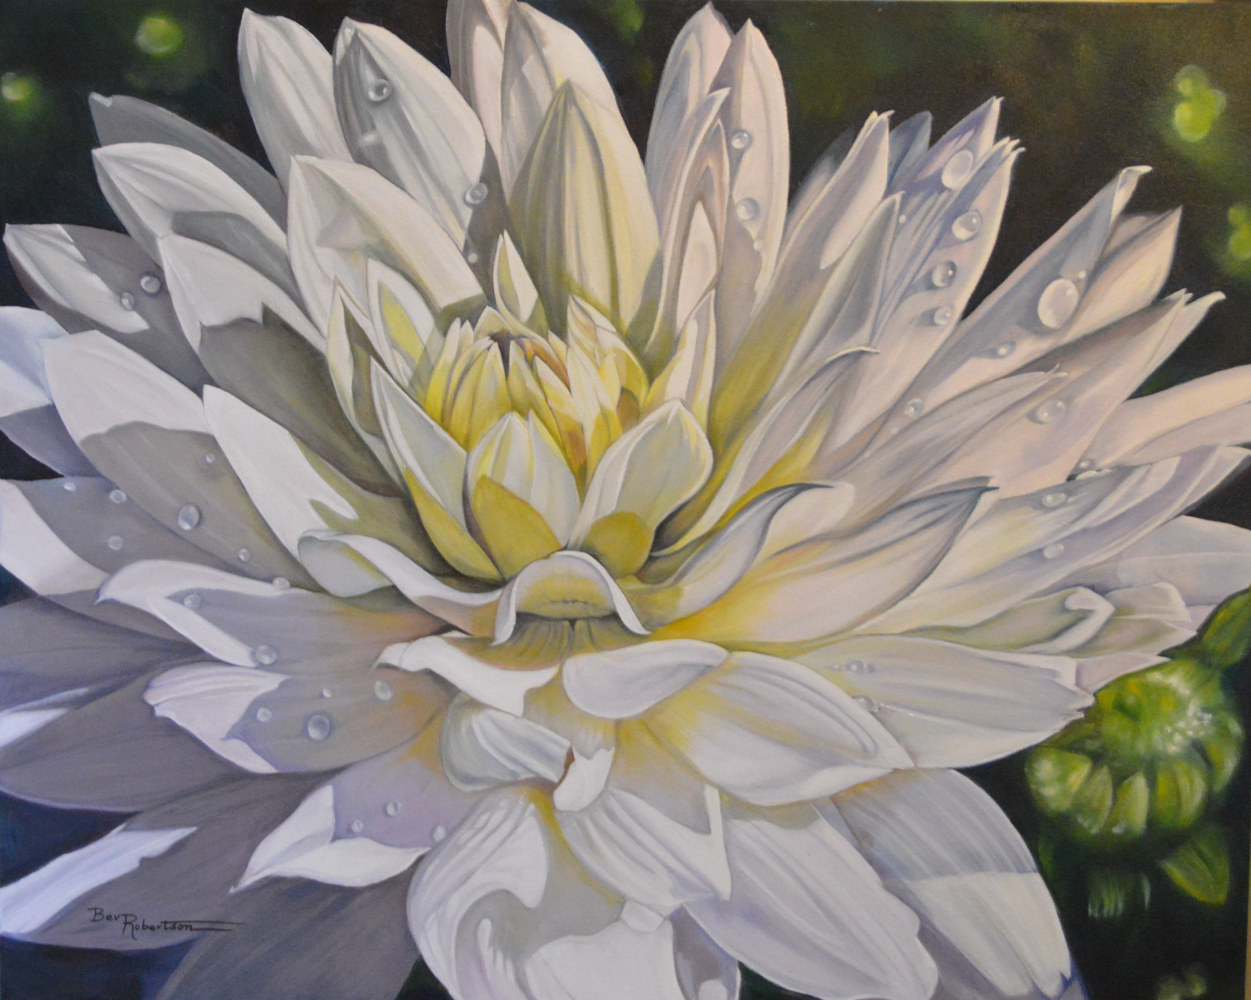 Oil painting Dew Drops on My Dahlia by Bev Robertson